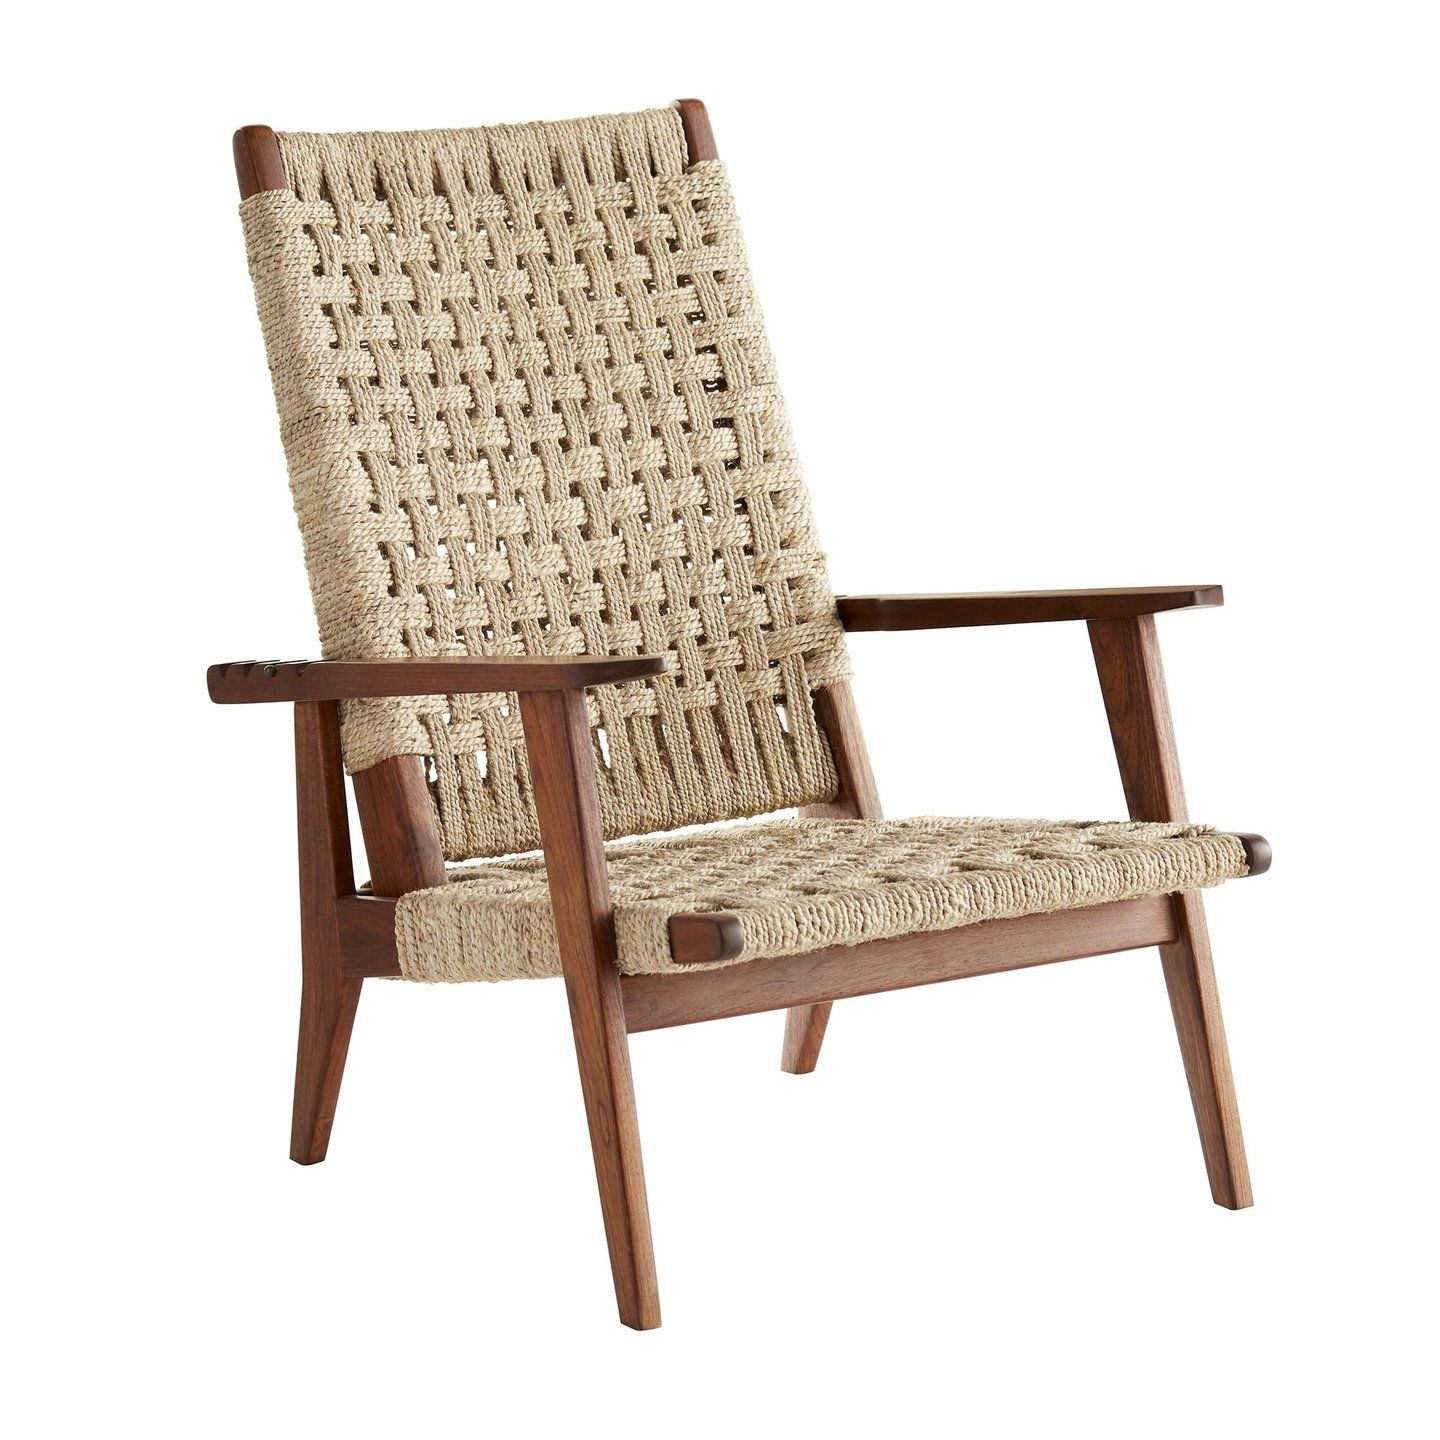 jericho reclining chair jute fabric parisians and interiors